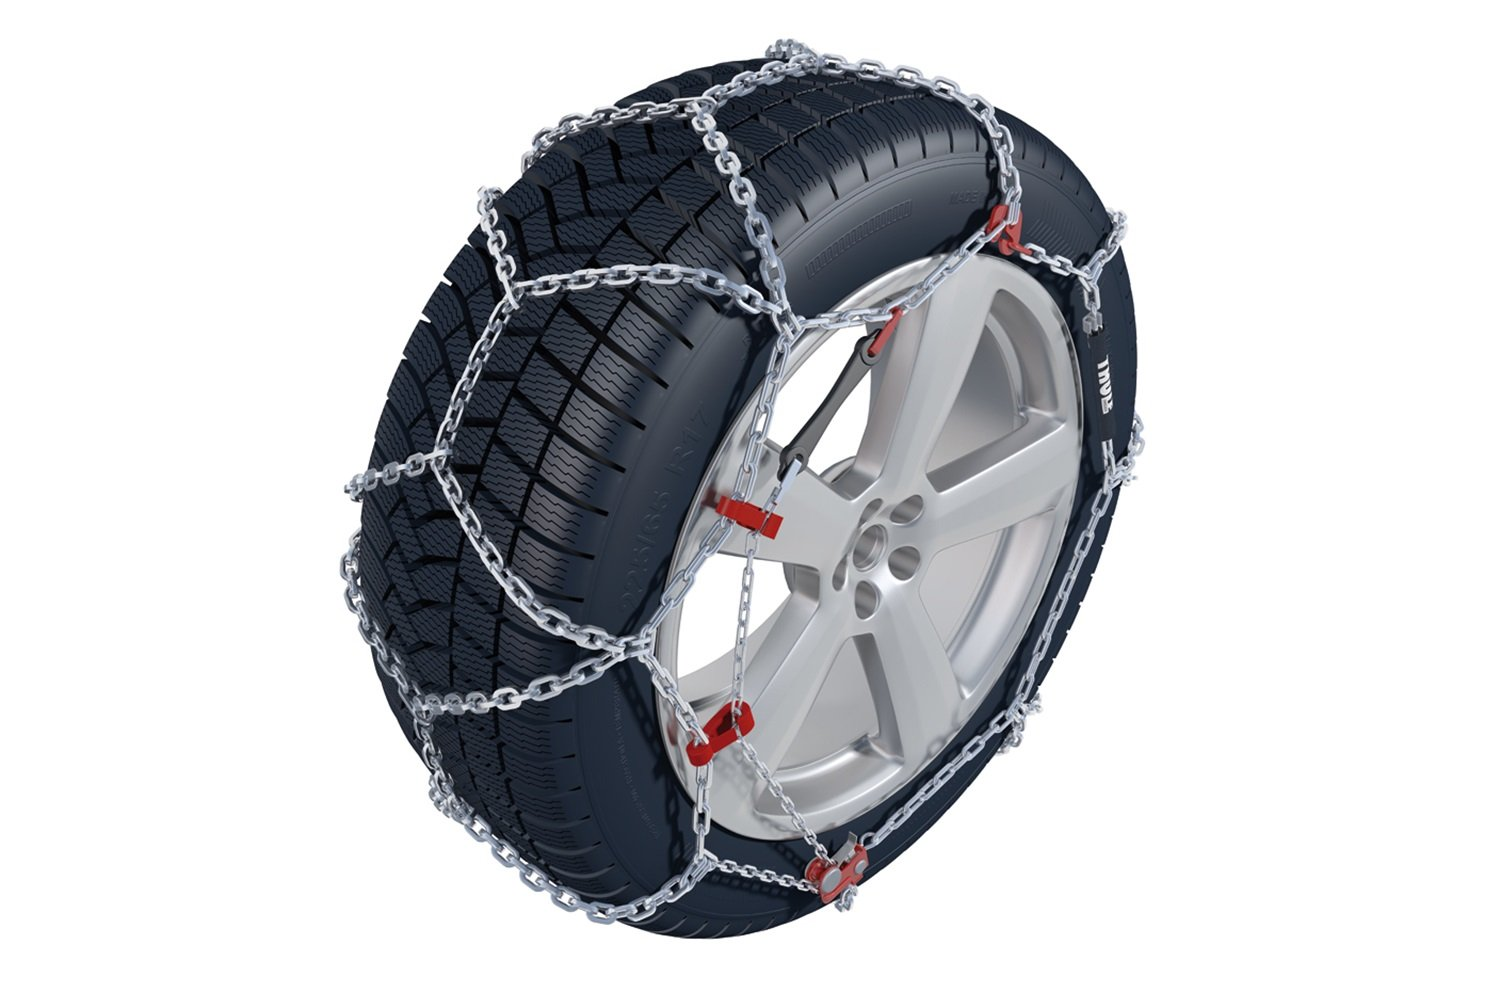 THULE | KONIG XB-16 247 Snow chains, set of 2